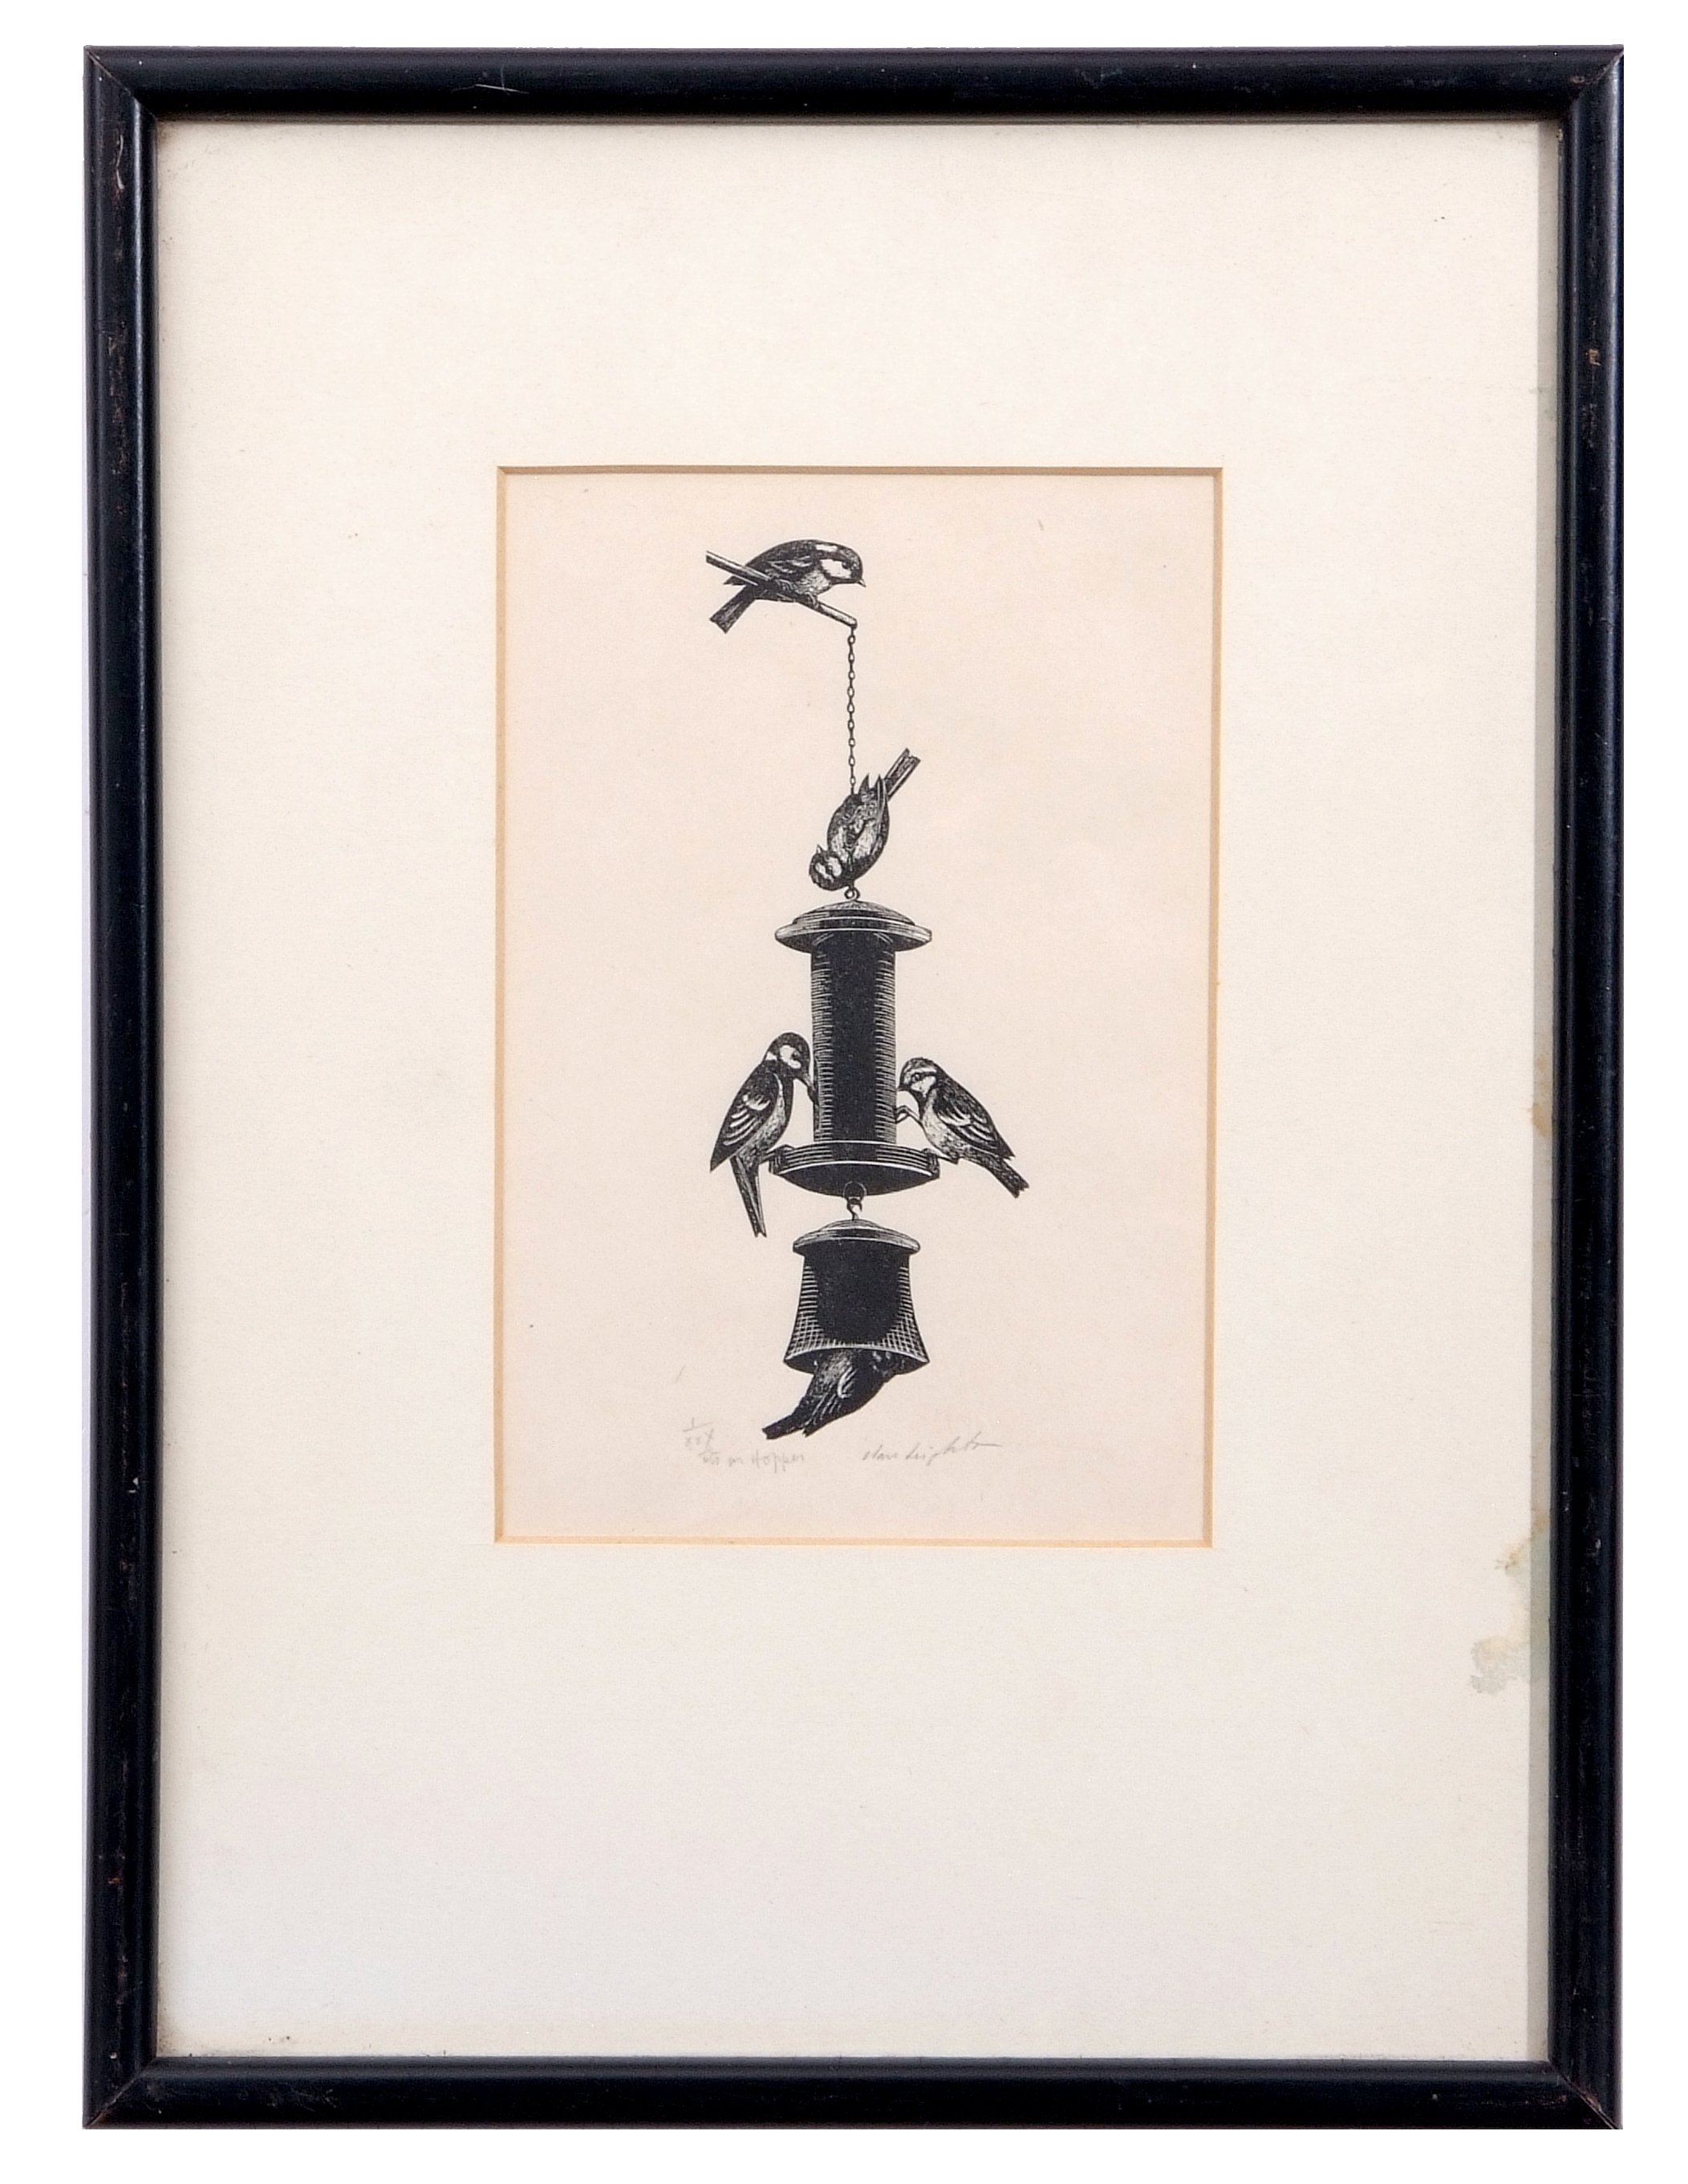 """Lot 116 - AR Clare Veronica Hope Leighton, SWE, ARE, RE (1898-1989 """"Tits on hopper"""" black and white woodcut,"""